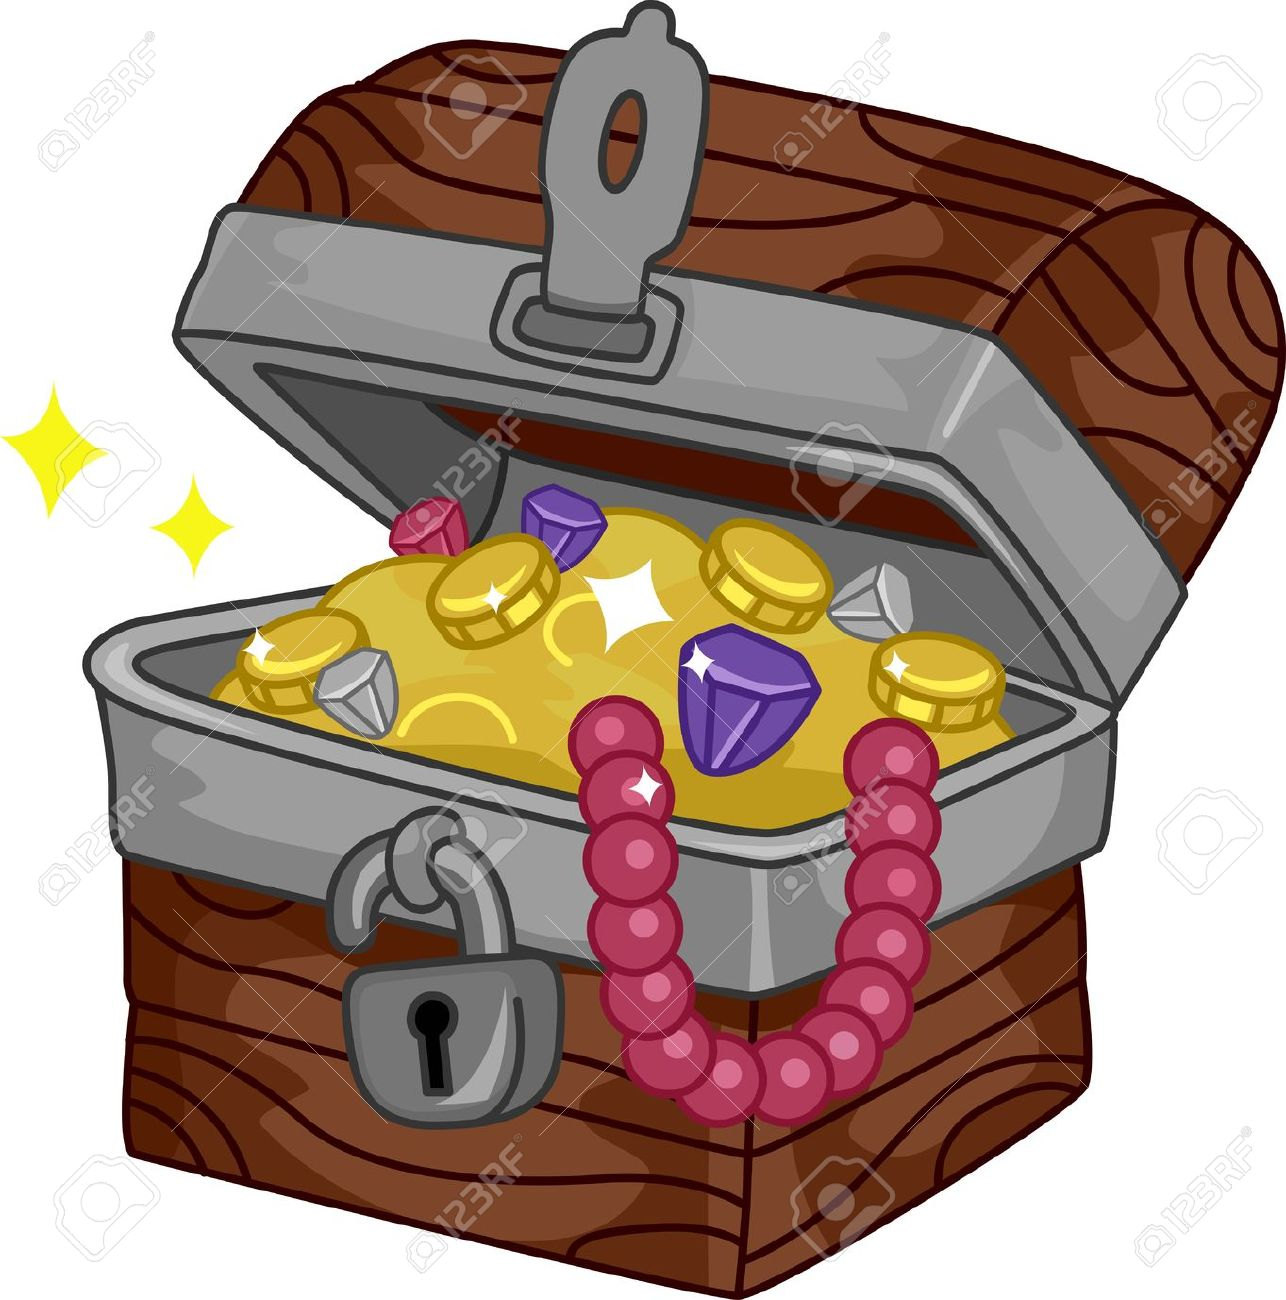 Illustration Of A Treasure Chest Full Of Goodies Stock Photo.